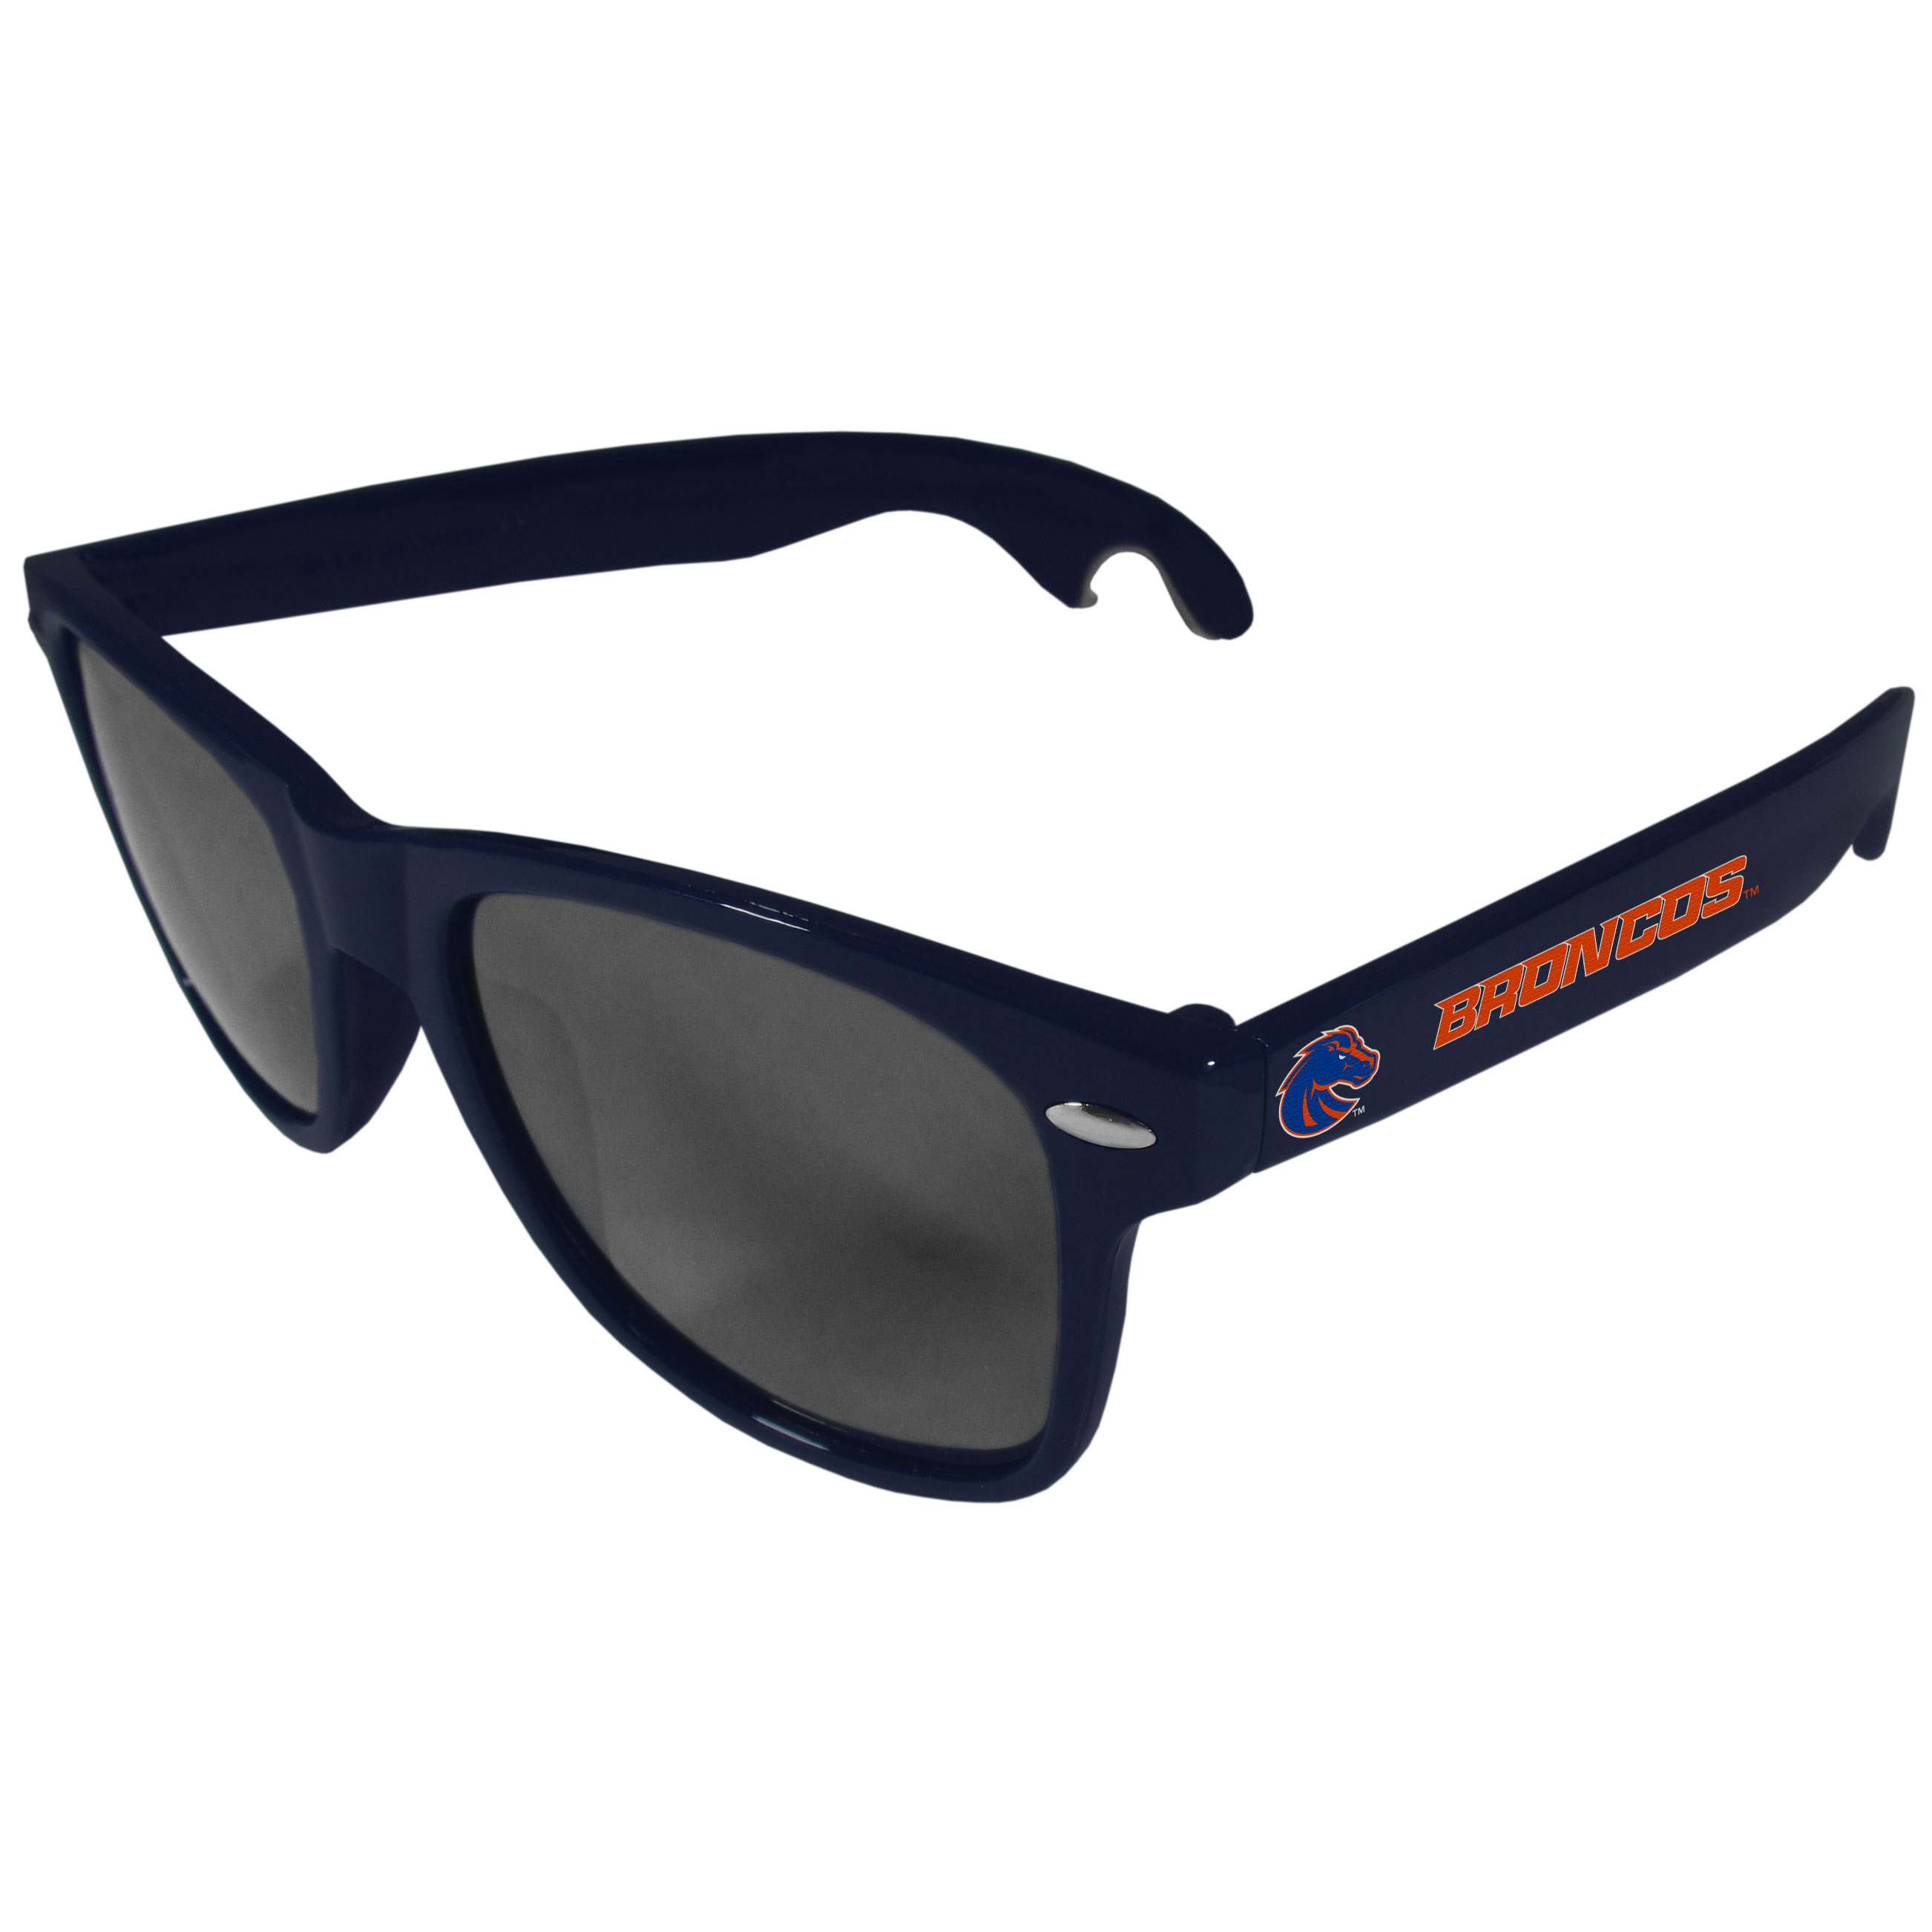 Boise St. Broncos Beachfarer Bottle Opener Sunglasses, Dark Blue - Seriously, these sunglasses open bottles! Keep the party going with these amazing Boise St. Broncos bottle opener sunglasses. The stylish retro frames feature team designs on the arms and functional bottle openers on the end of the arms. Whether you are at the beach or having a backyard BBQ on game day, these shades will keep your eyes protected with 100% UVA/UVB protection and keep you hydrated with the handy bottle opener arms.